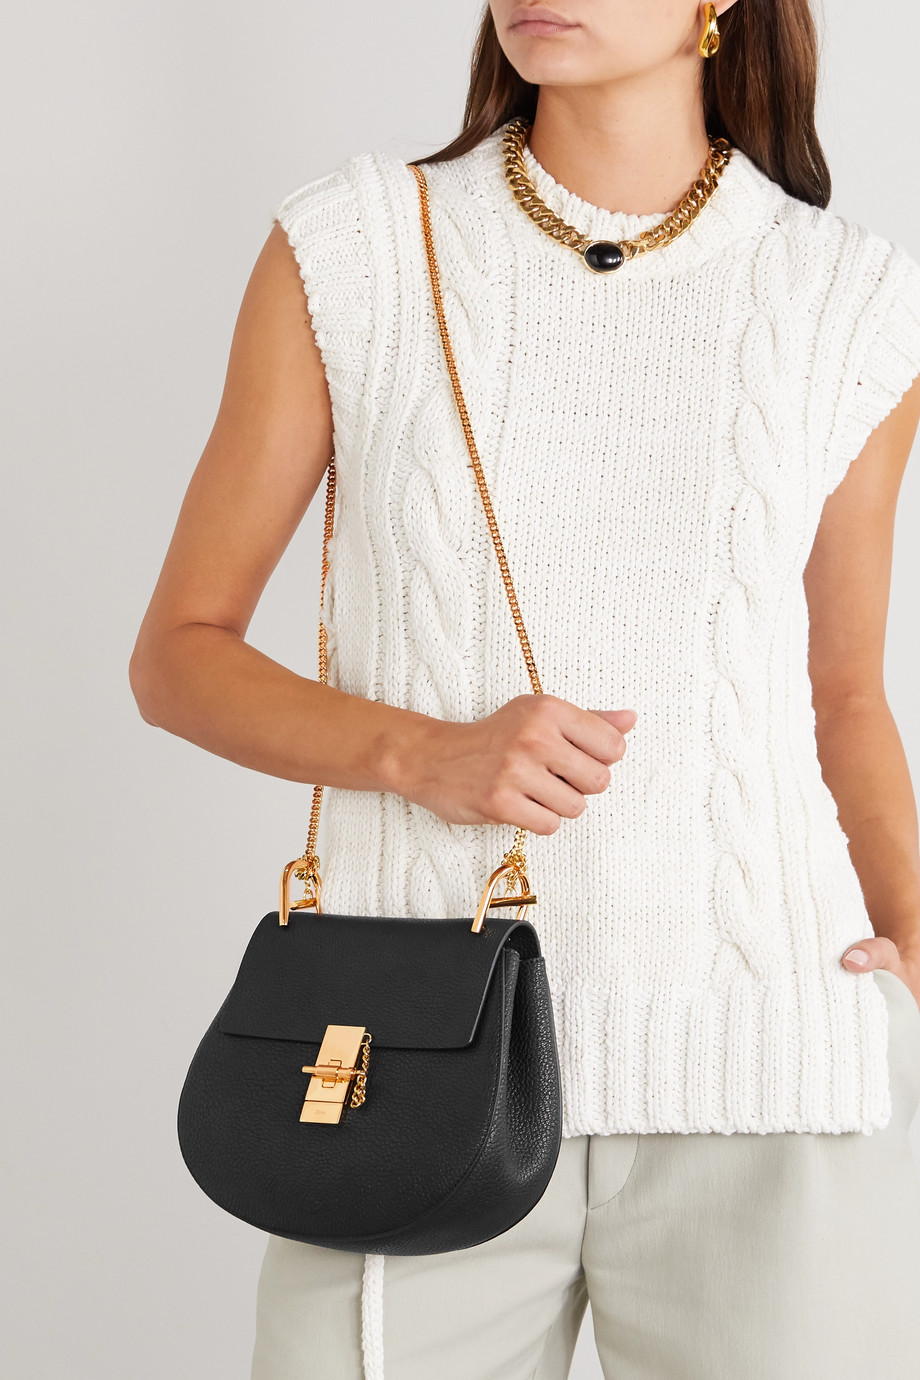 CHLOÉ Drew textured-leather shoulder bag